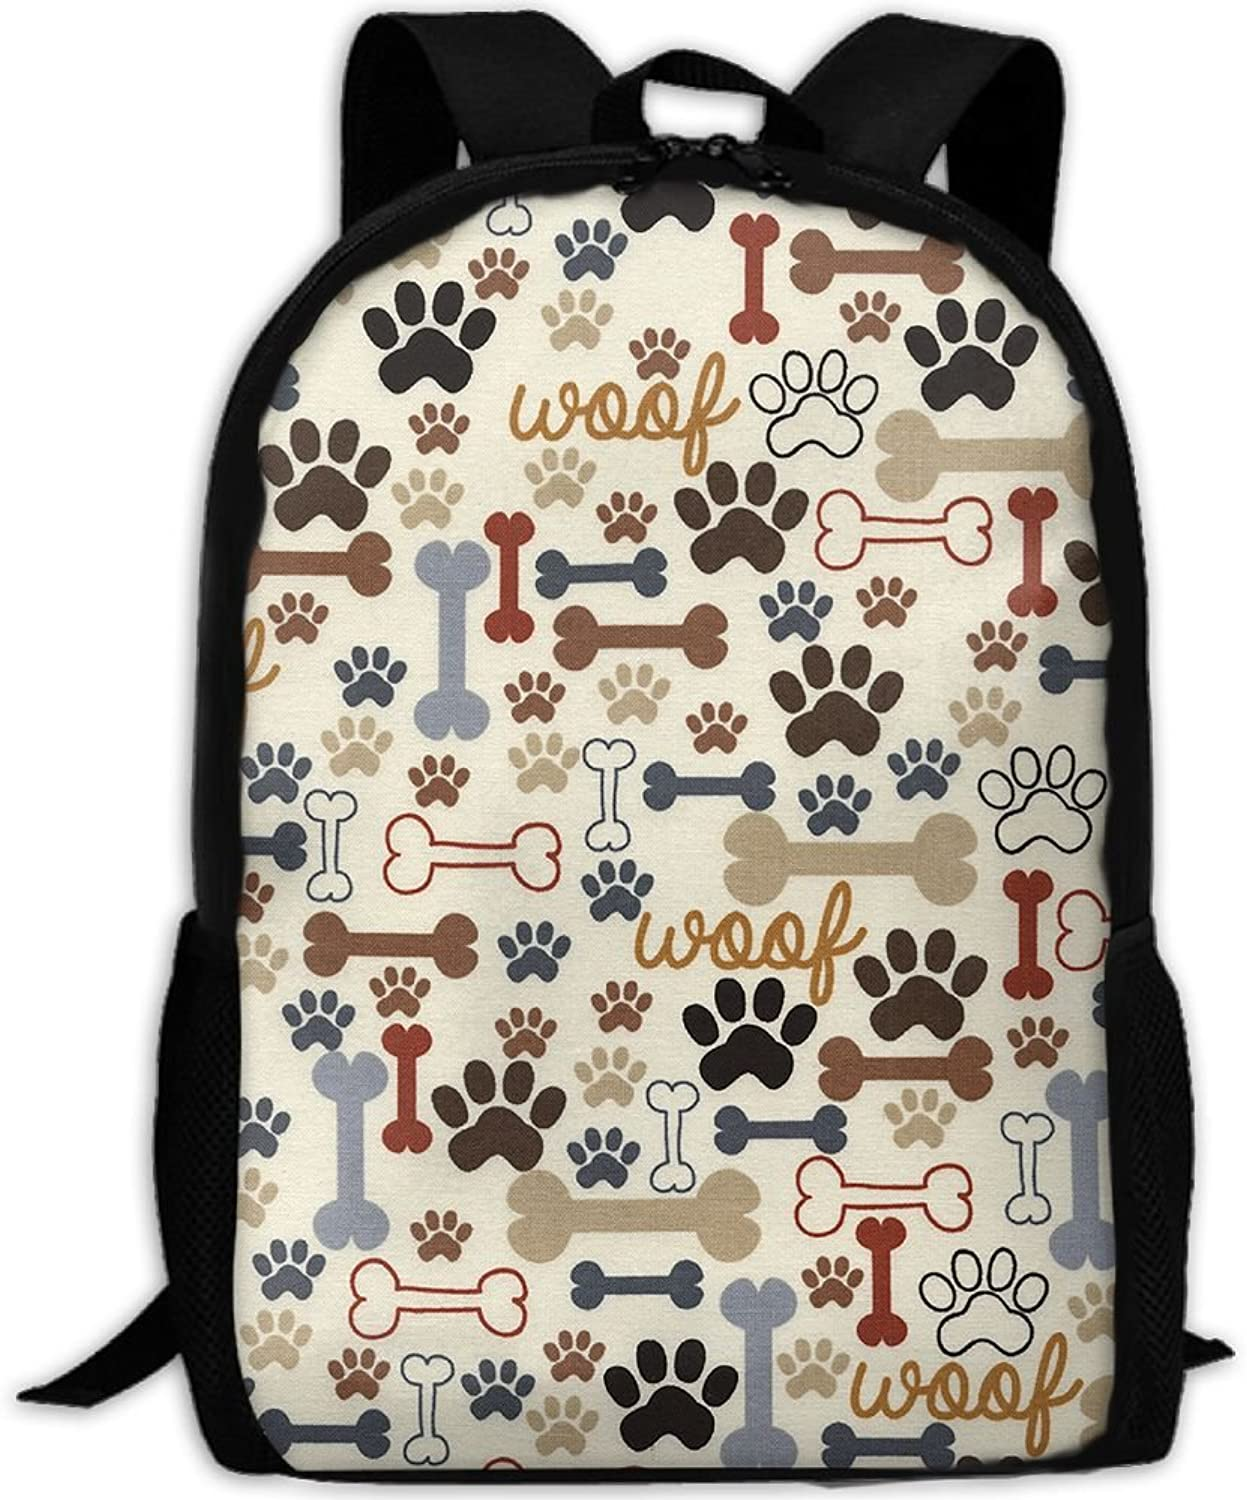 66efb31c0e8f Backpack Laptop School Bags Dog Bones Daypack Shoulder Bag Travel ...